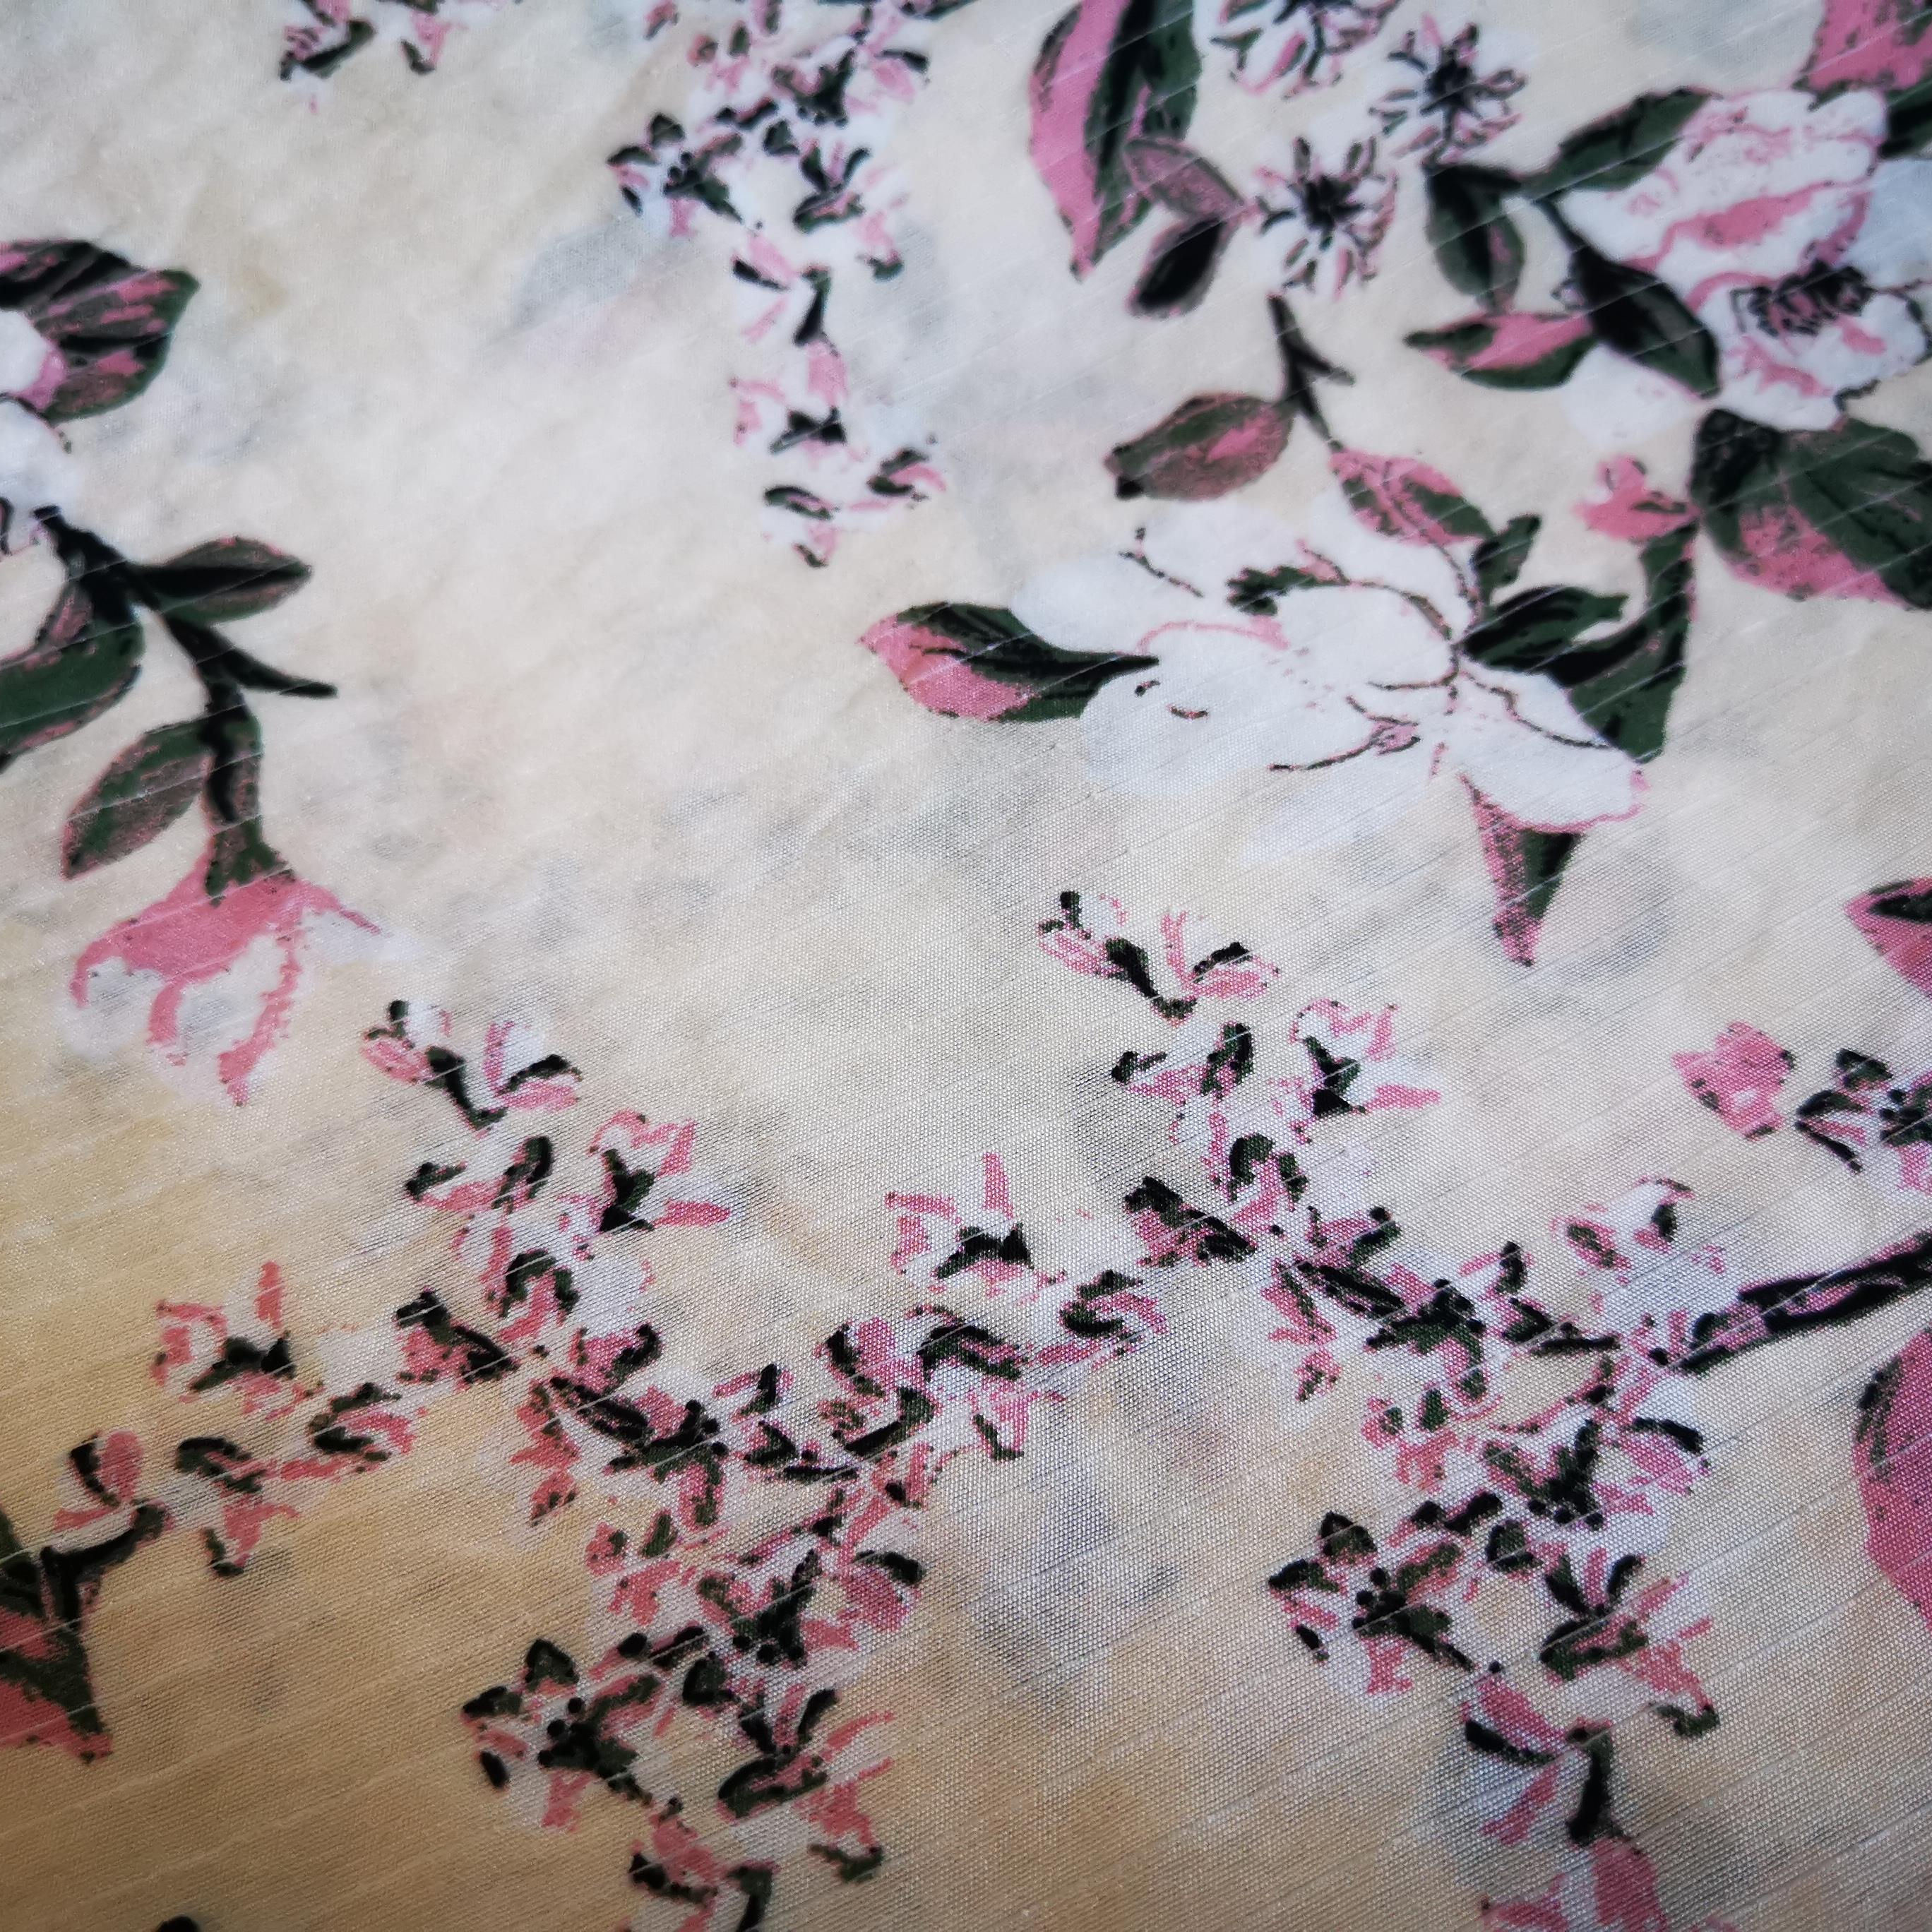 China Factory 100% Microfiber Polyester disperse Print Home Textile Fabric Renewable Source 70GSM sofa fabric new